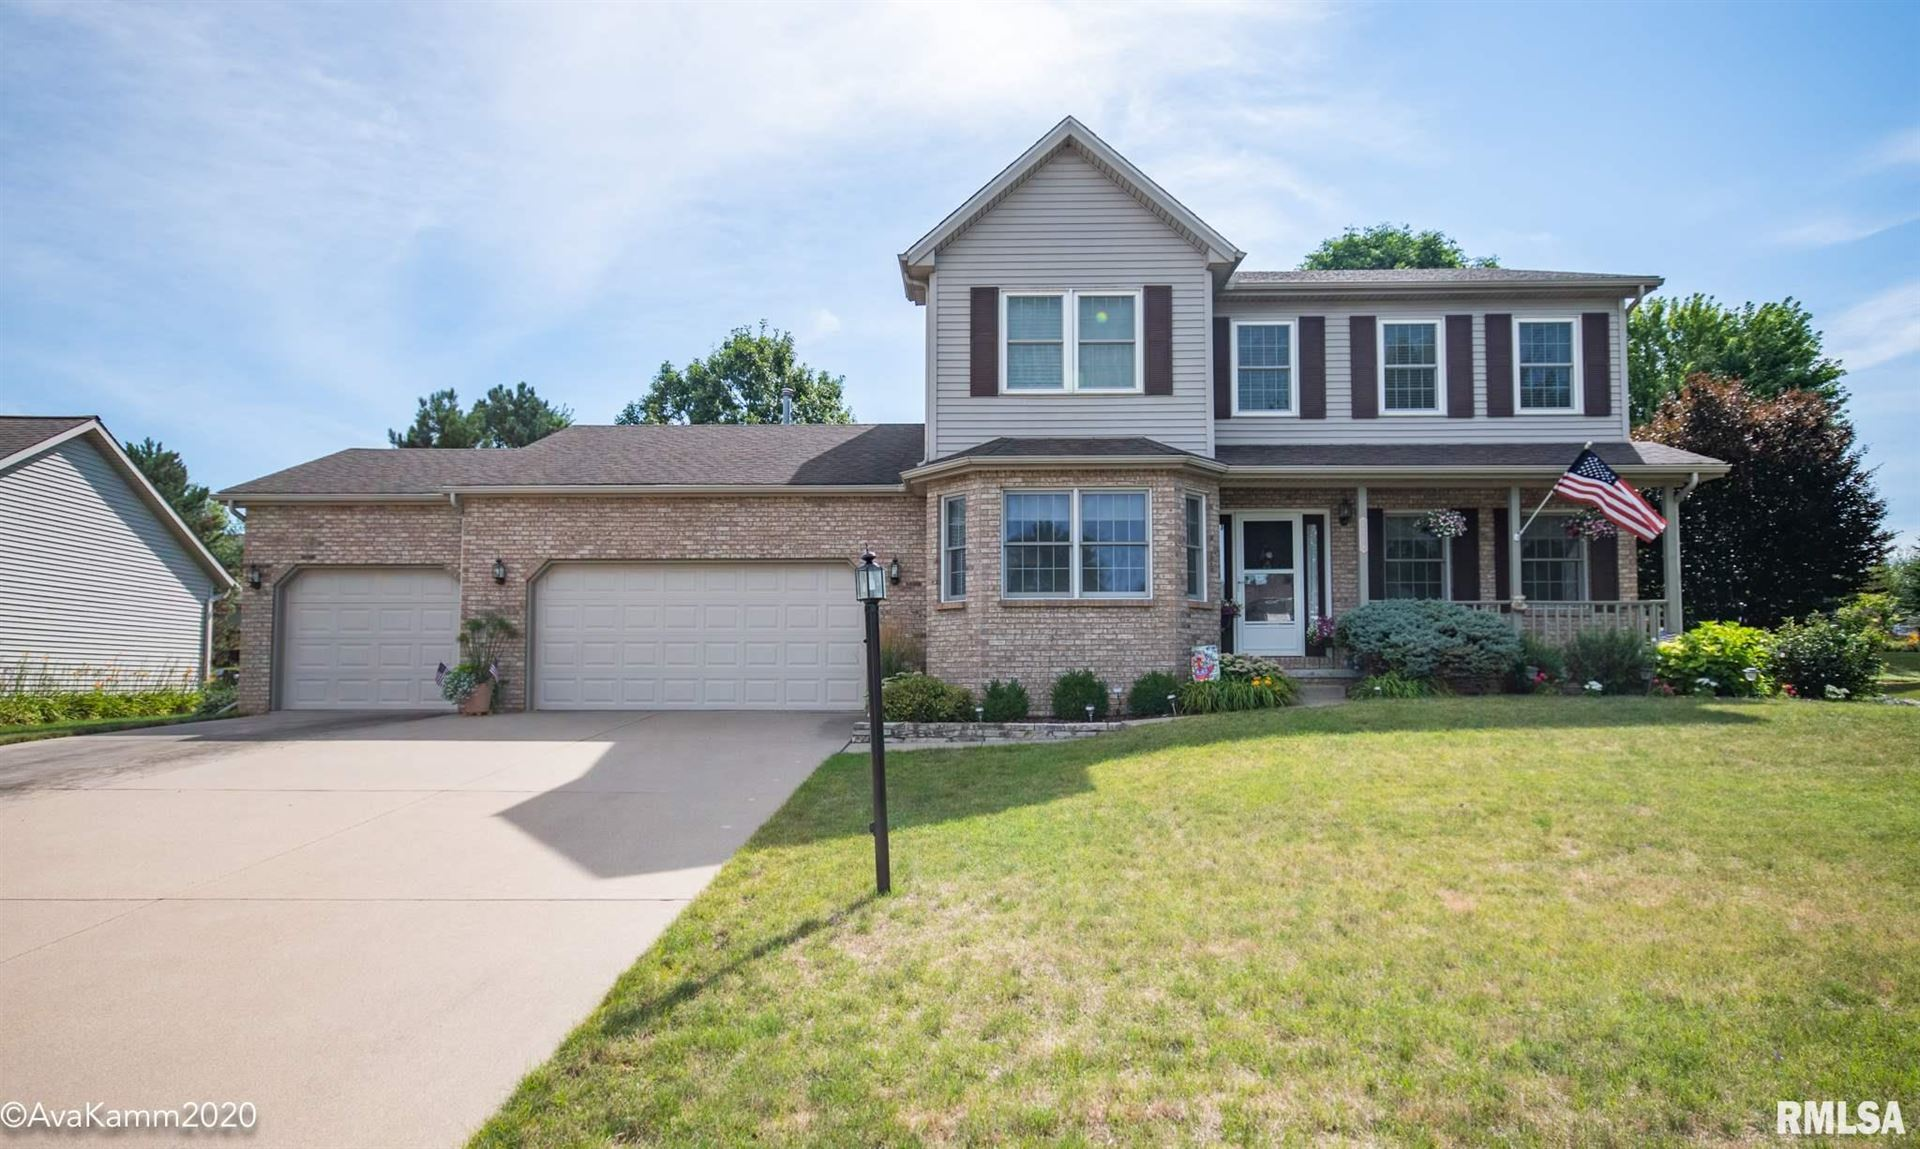 5318 N ROTHMERE Drive, Peoria, IL 61615 - #: PA1217095